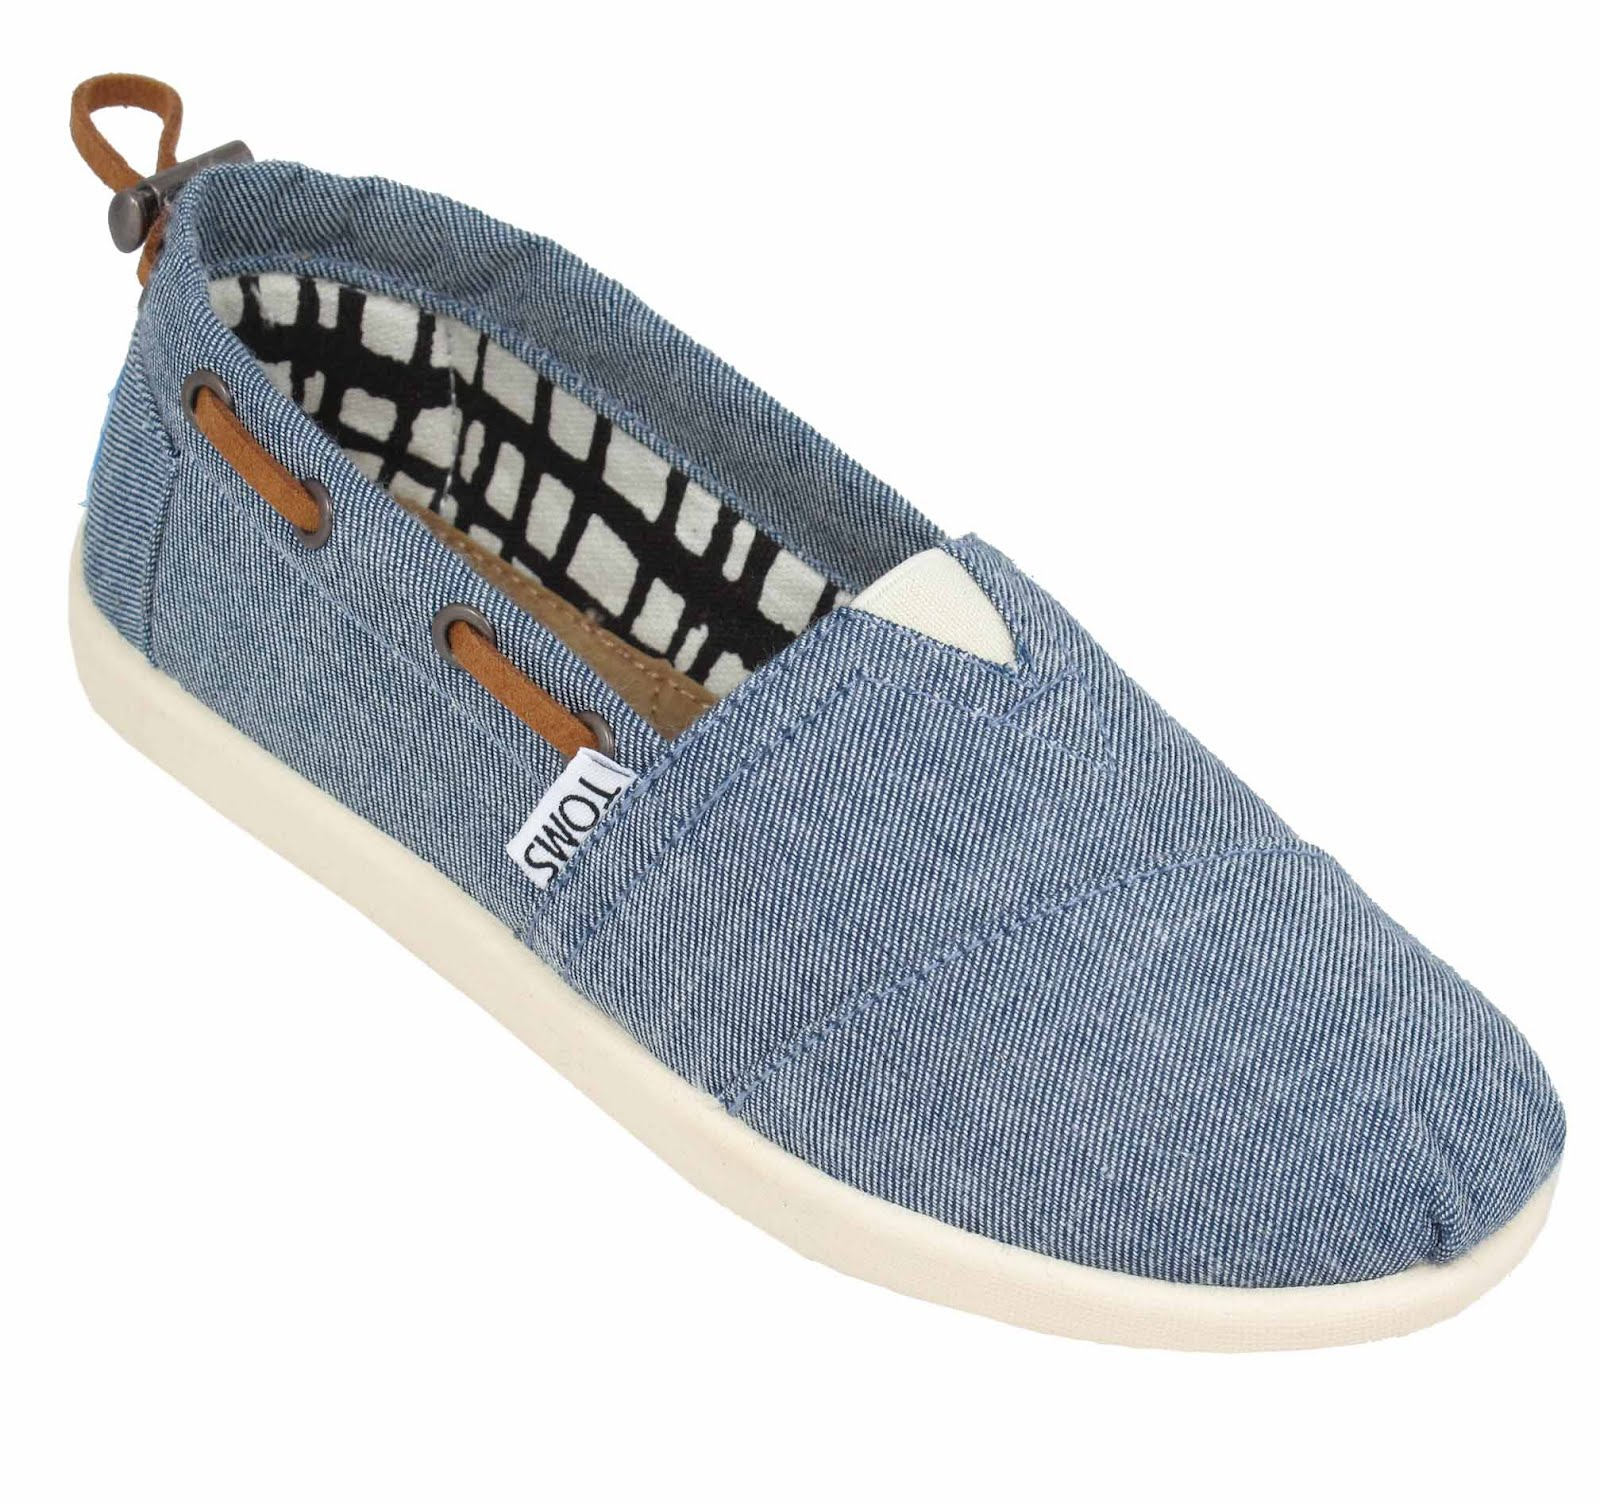 Check out popular styles in toms baby shoe at Journeys! Journeys offers the latest trends in footwear, apparel, accessories and more from your favorite brands like Adidas, Vans, and Converse with free shipping and free in-store returns on orders over $ Shop toms baby shoe Now!